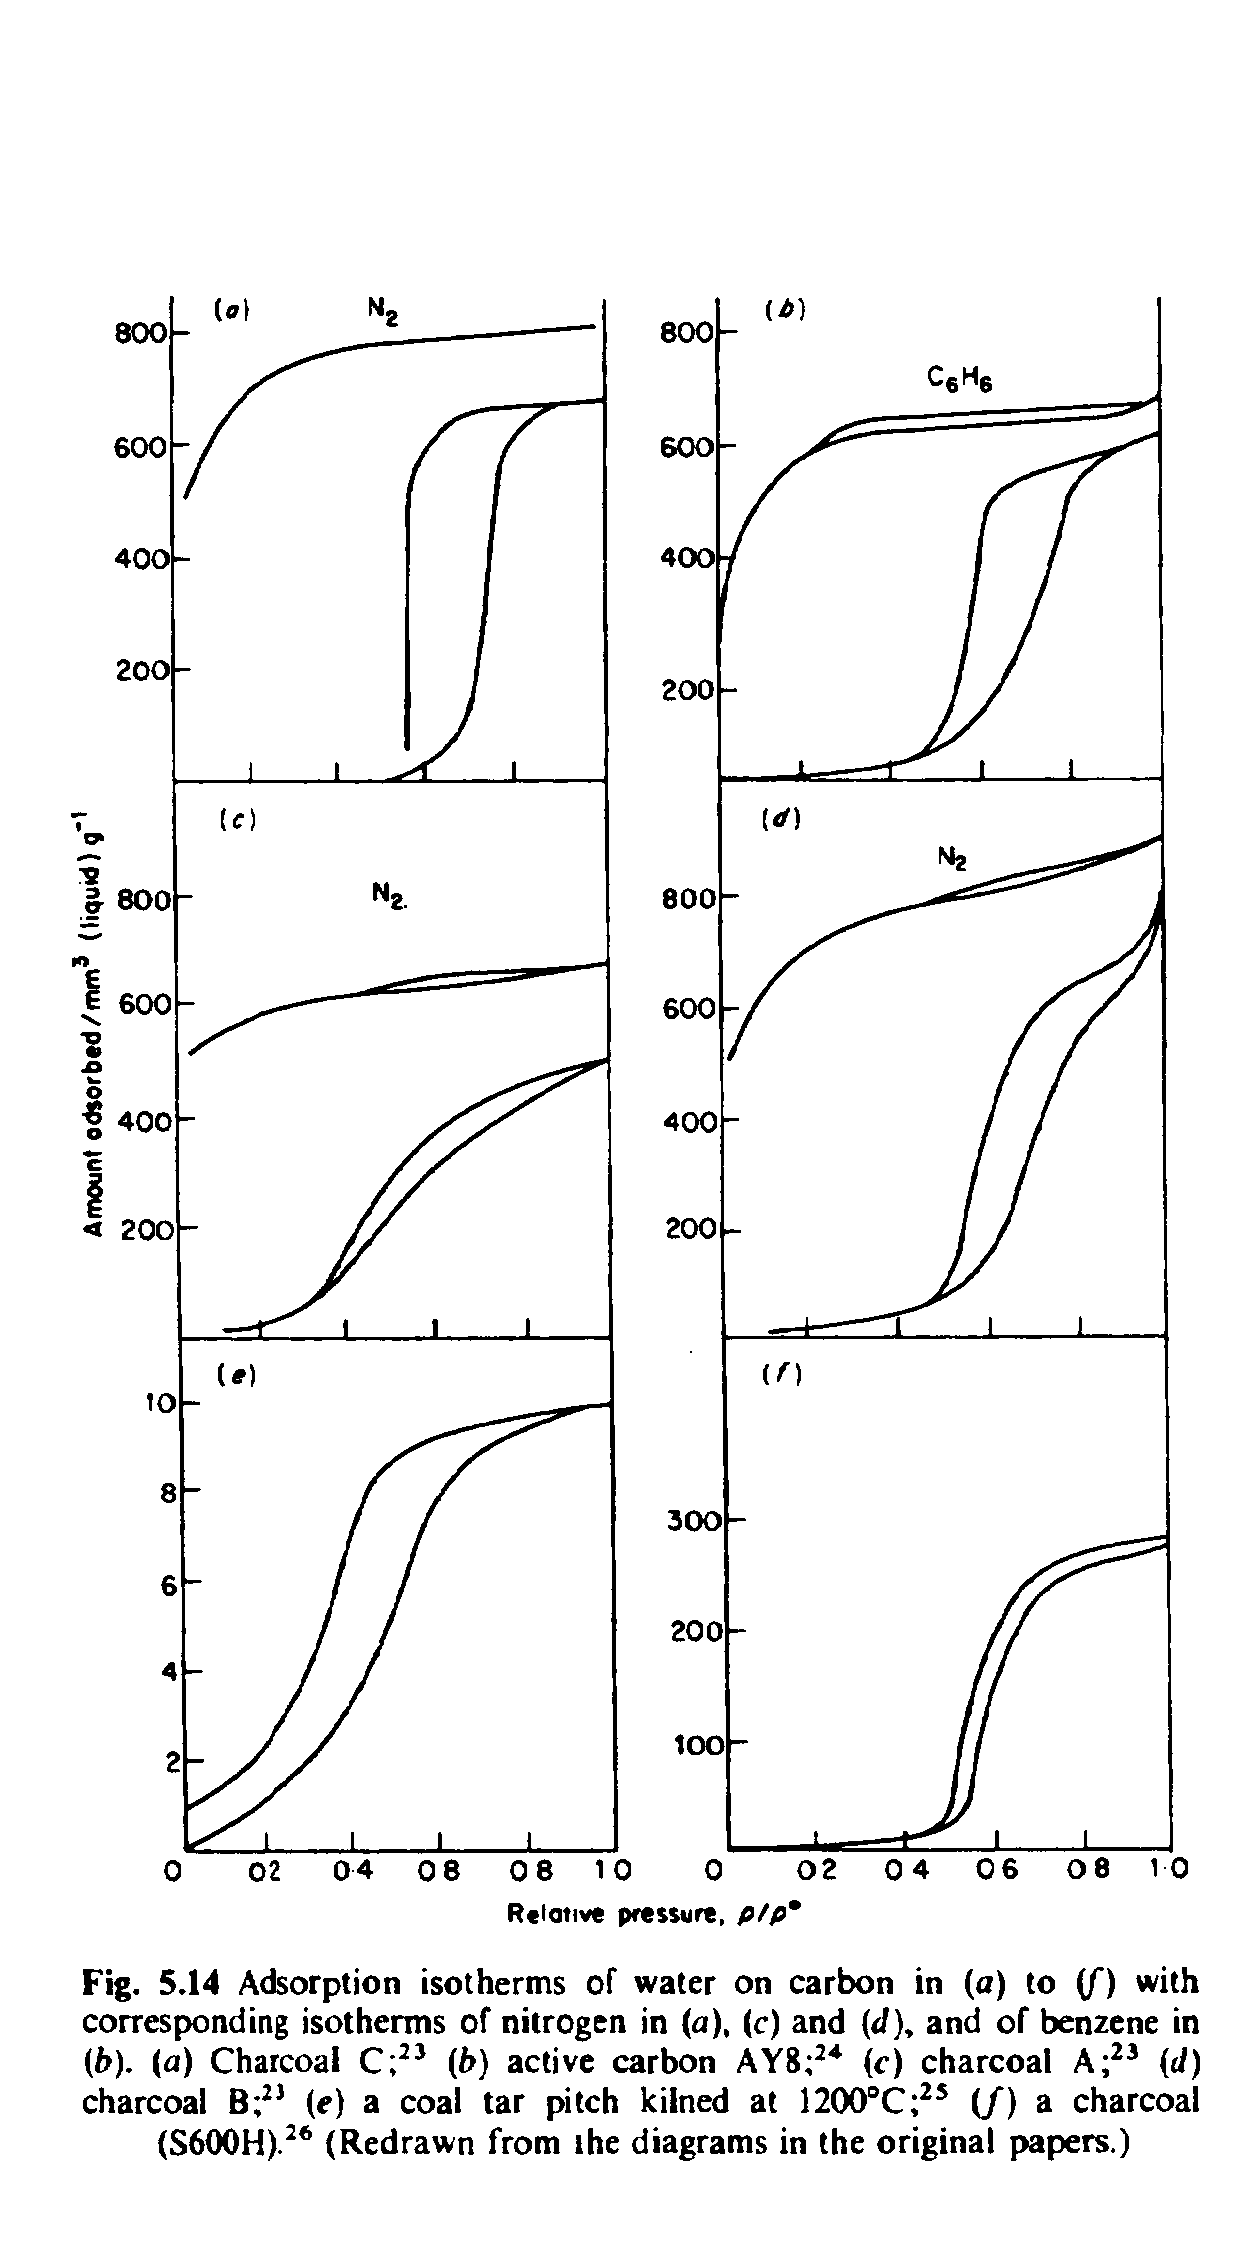 Fig. 5.14 Adsorption isotherms of water on carbon in (a) to f) with corresponding isotherms of nitrogen in (a), (c) and (J), and of benzene in (f>). (a) Charcoal (b) active carbon AY8 (c) charcoal A (J) charcoal (e) a coal tar pitch kilned at 1200°C (/) a charcoal (S600H). (Redrawn from the diagrams in the original papers.)...